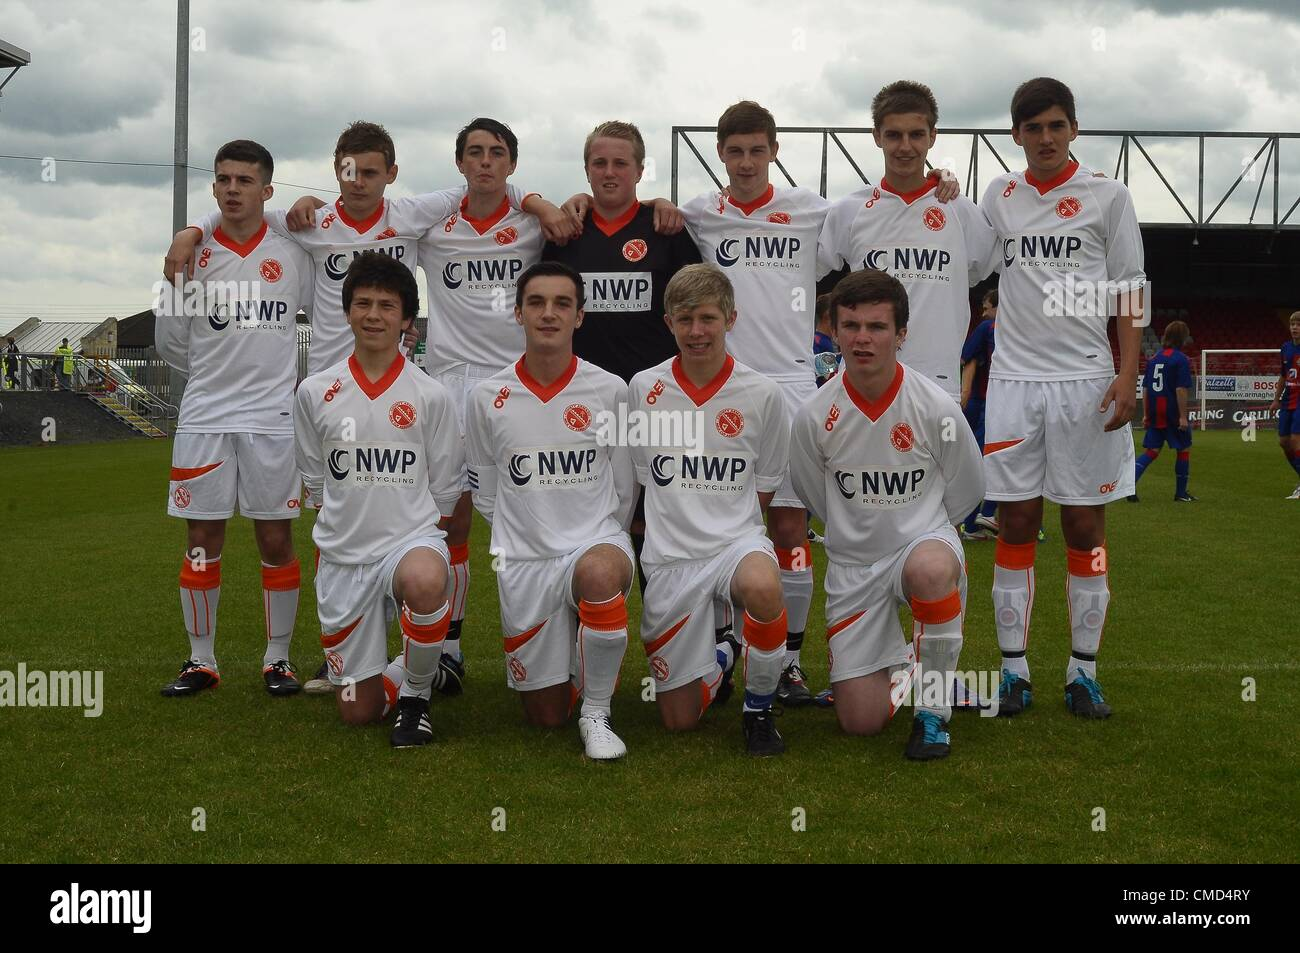 Co.Armagh County Armagh 2 KSCA Moscow 2 Milk Cup Junior Tournament, Shamrock Park, Portadown, N.Ireland  21/07/2012 - Stock Image